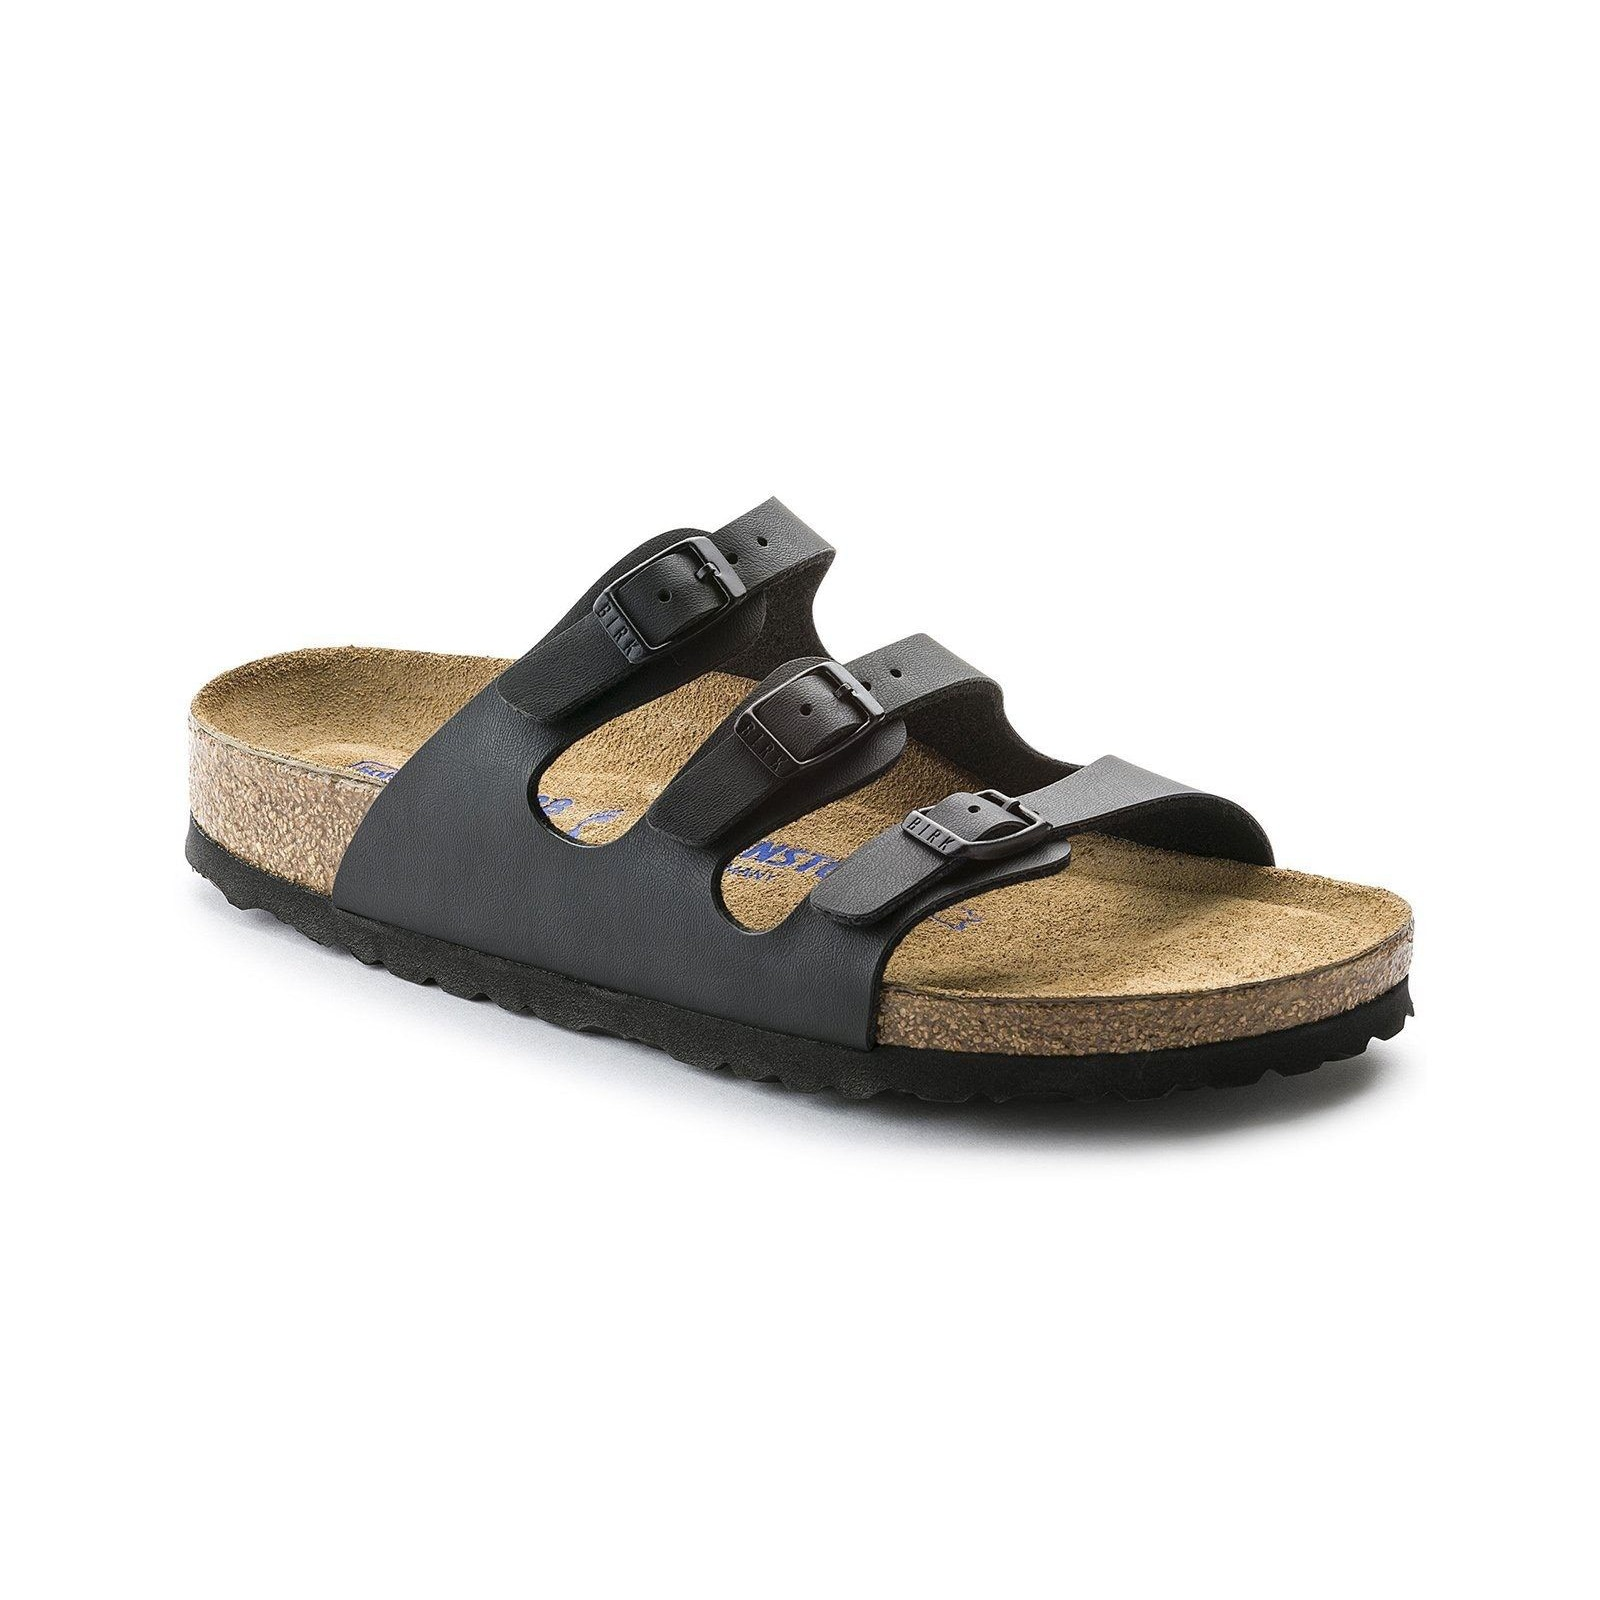 Florida Soft Narrow Sandal